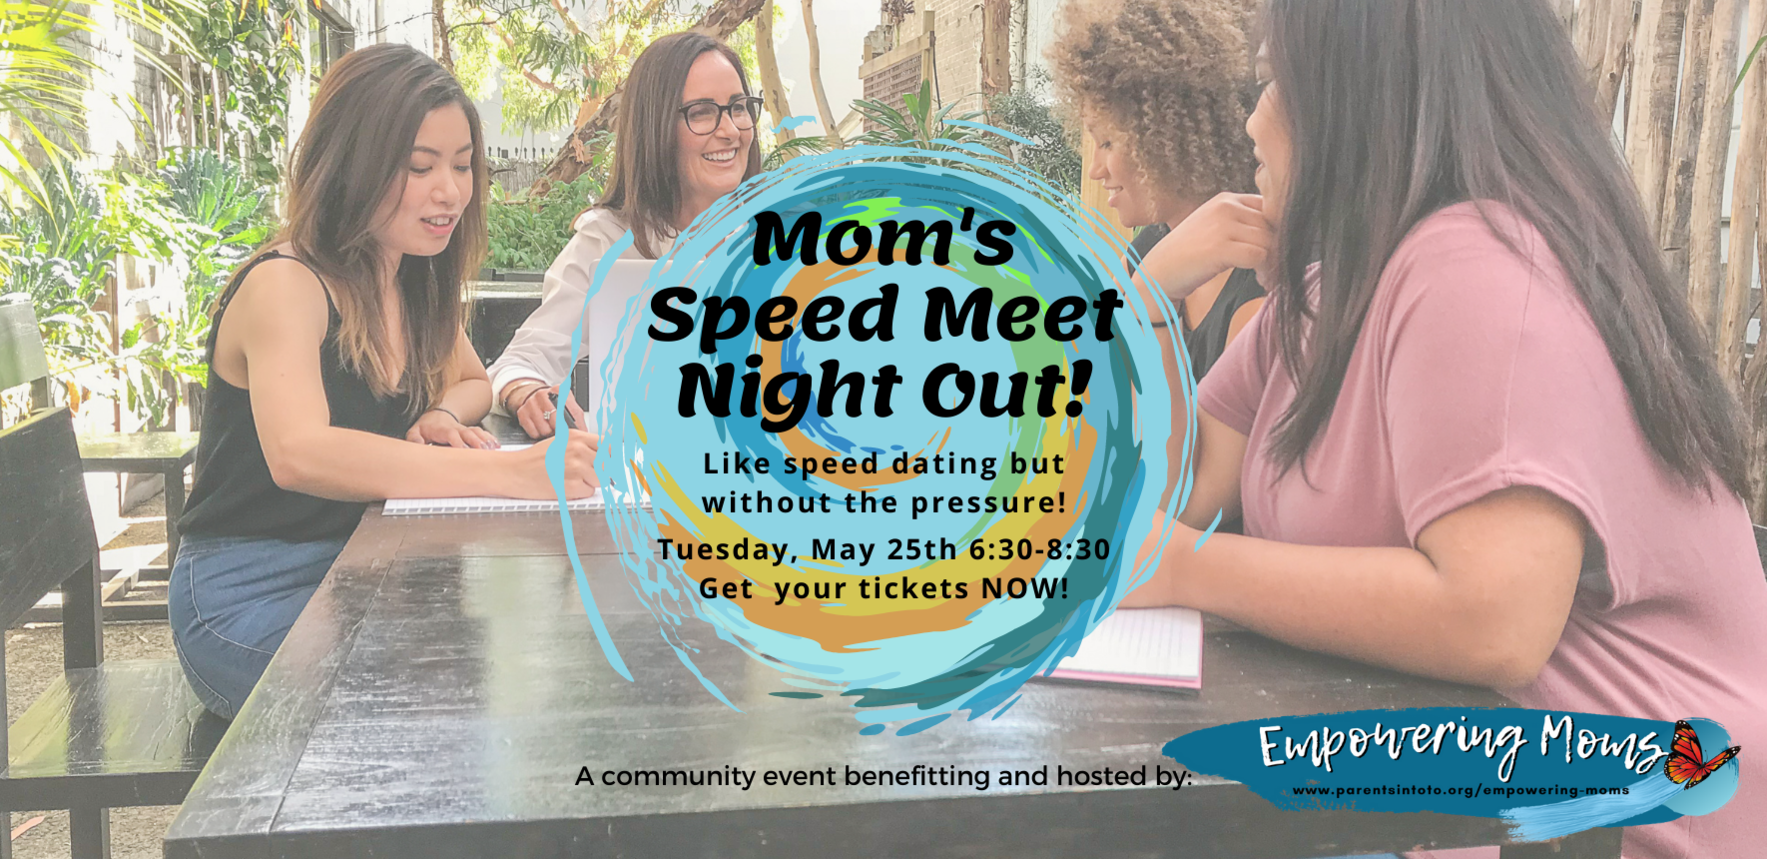 Mom's Speed Meet Night Out image